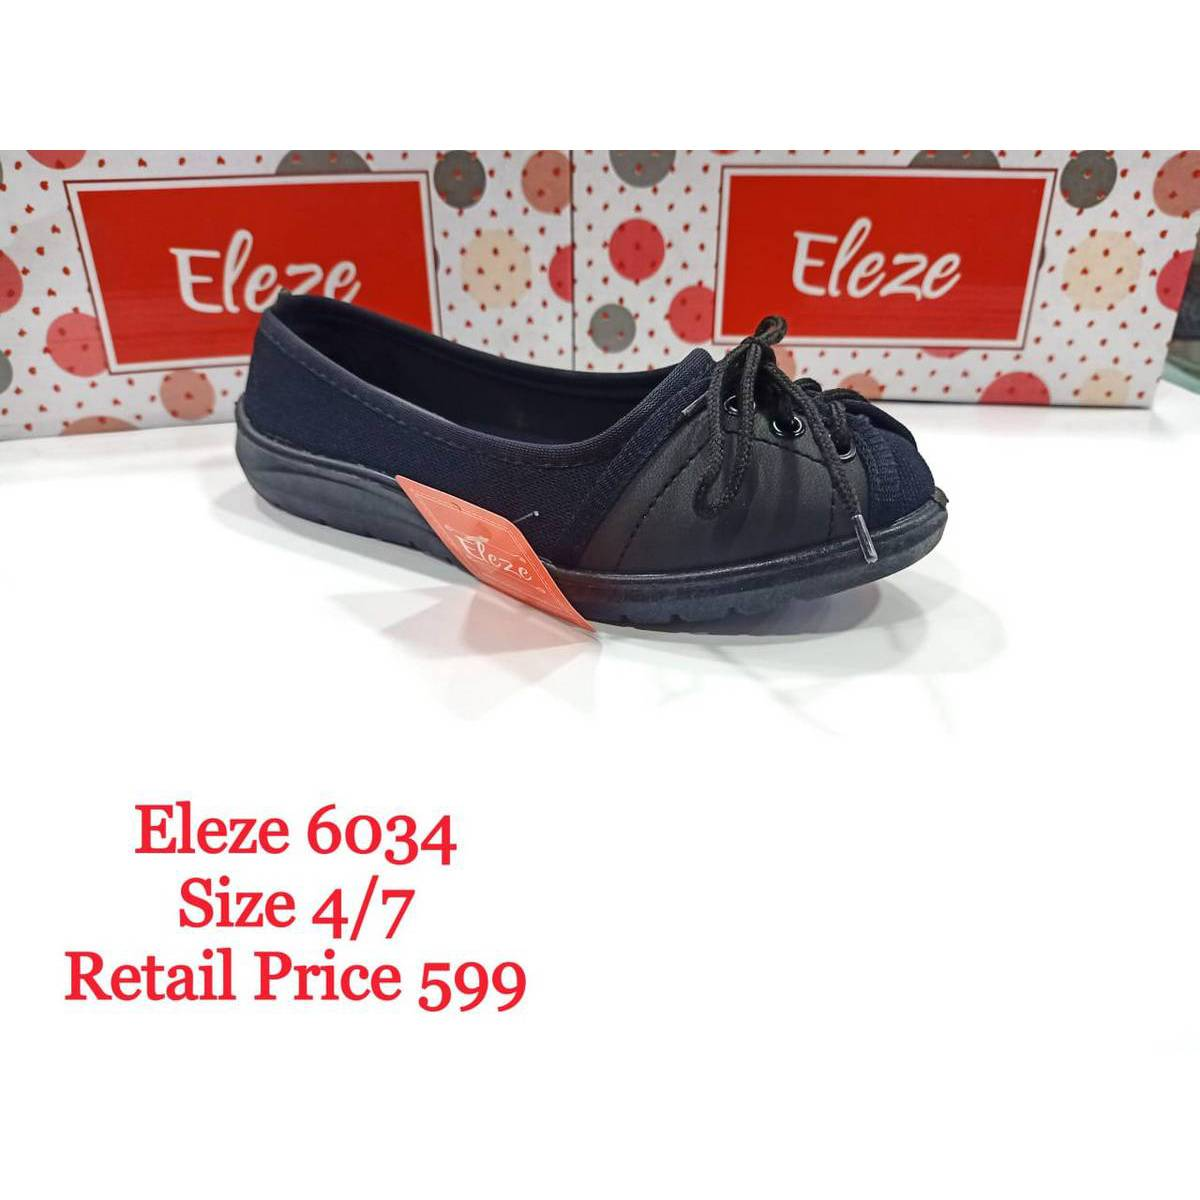 Eleeze Shoes For Ladies (Winter Collection)